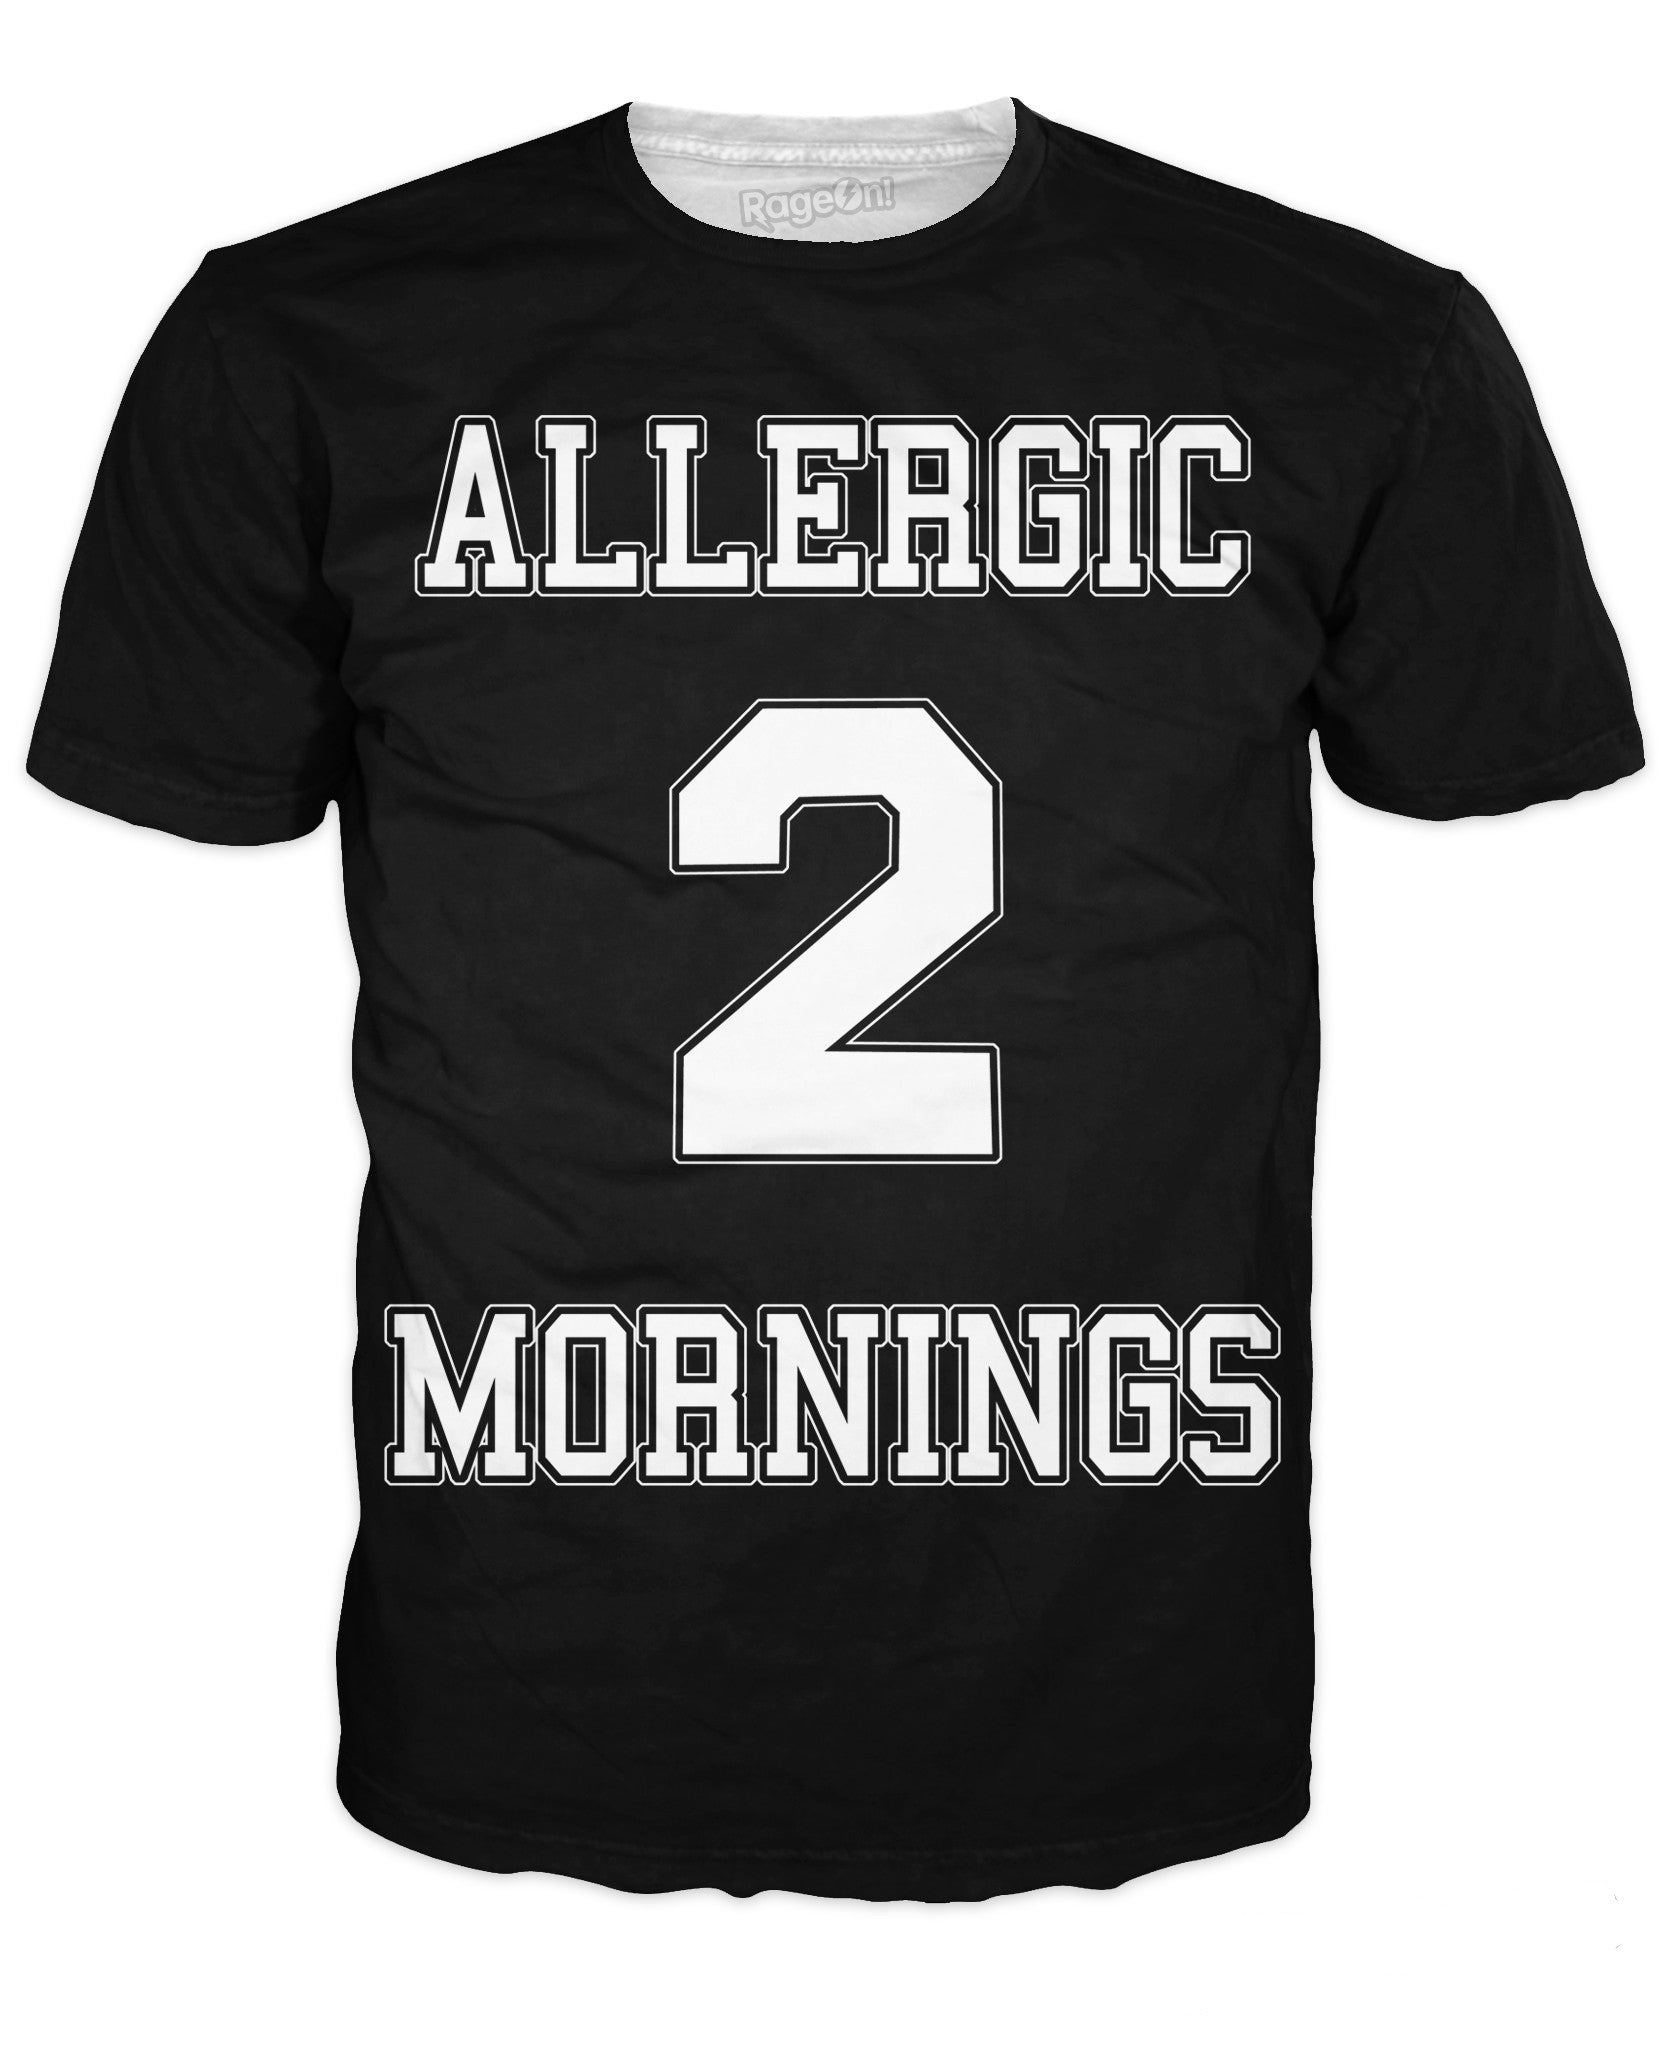 Allergic 2 Mornings T-Shirt - TShirtsRUS.co